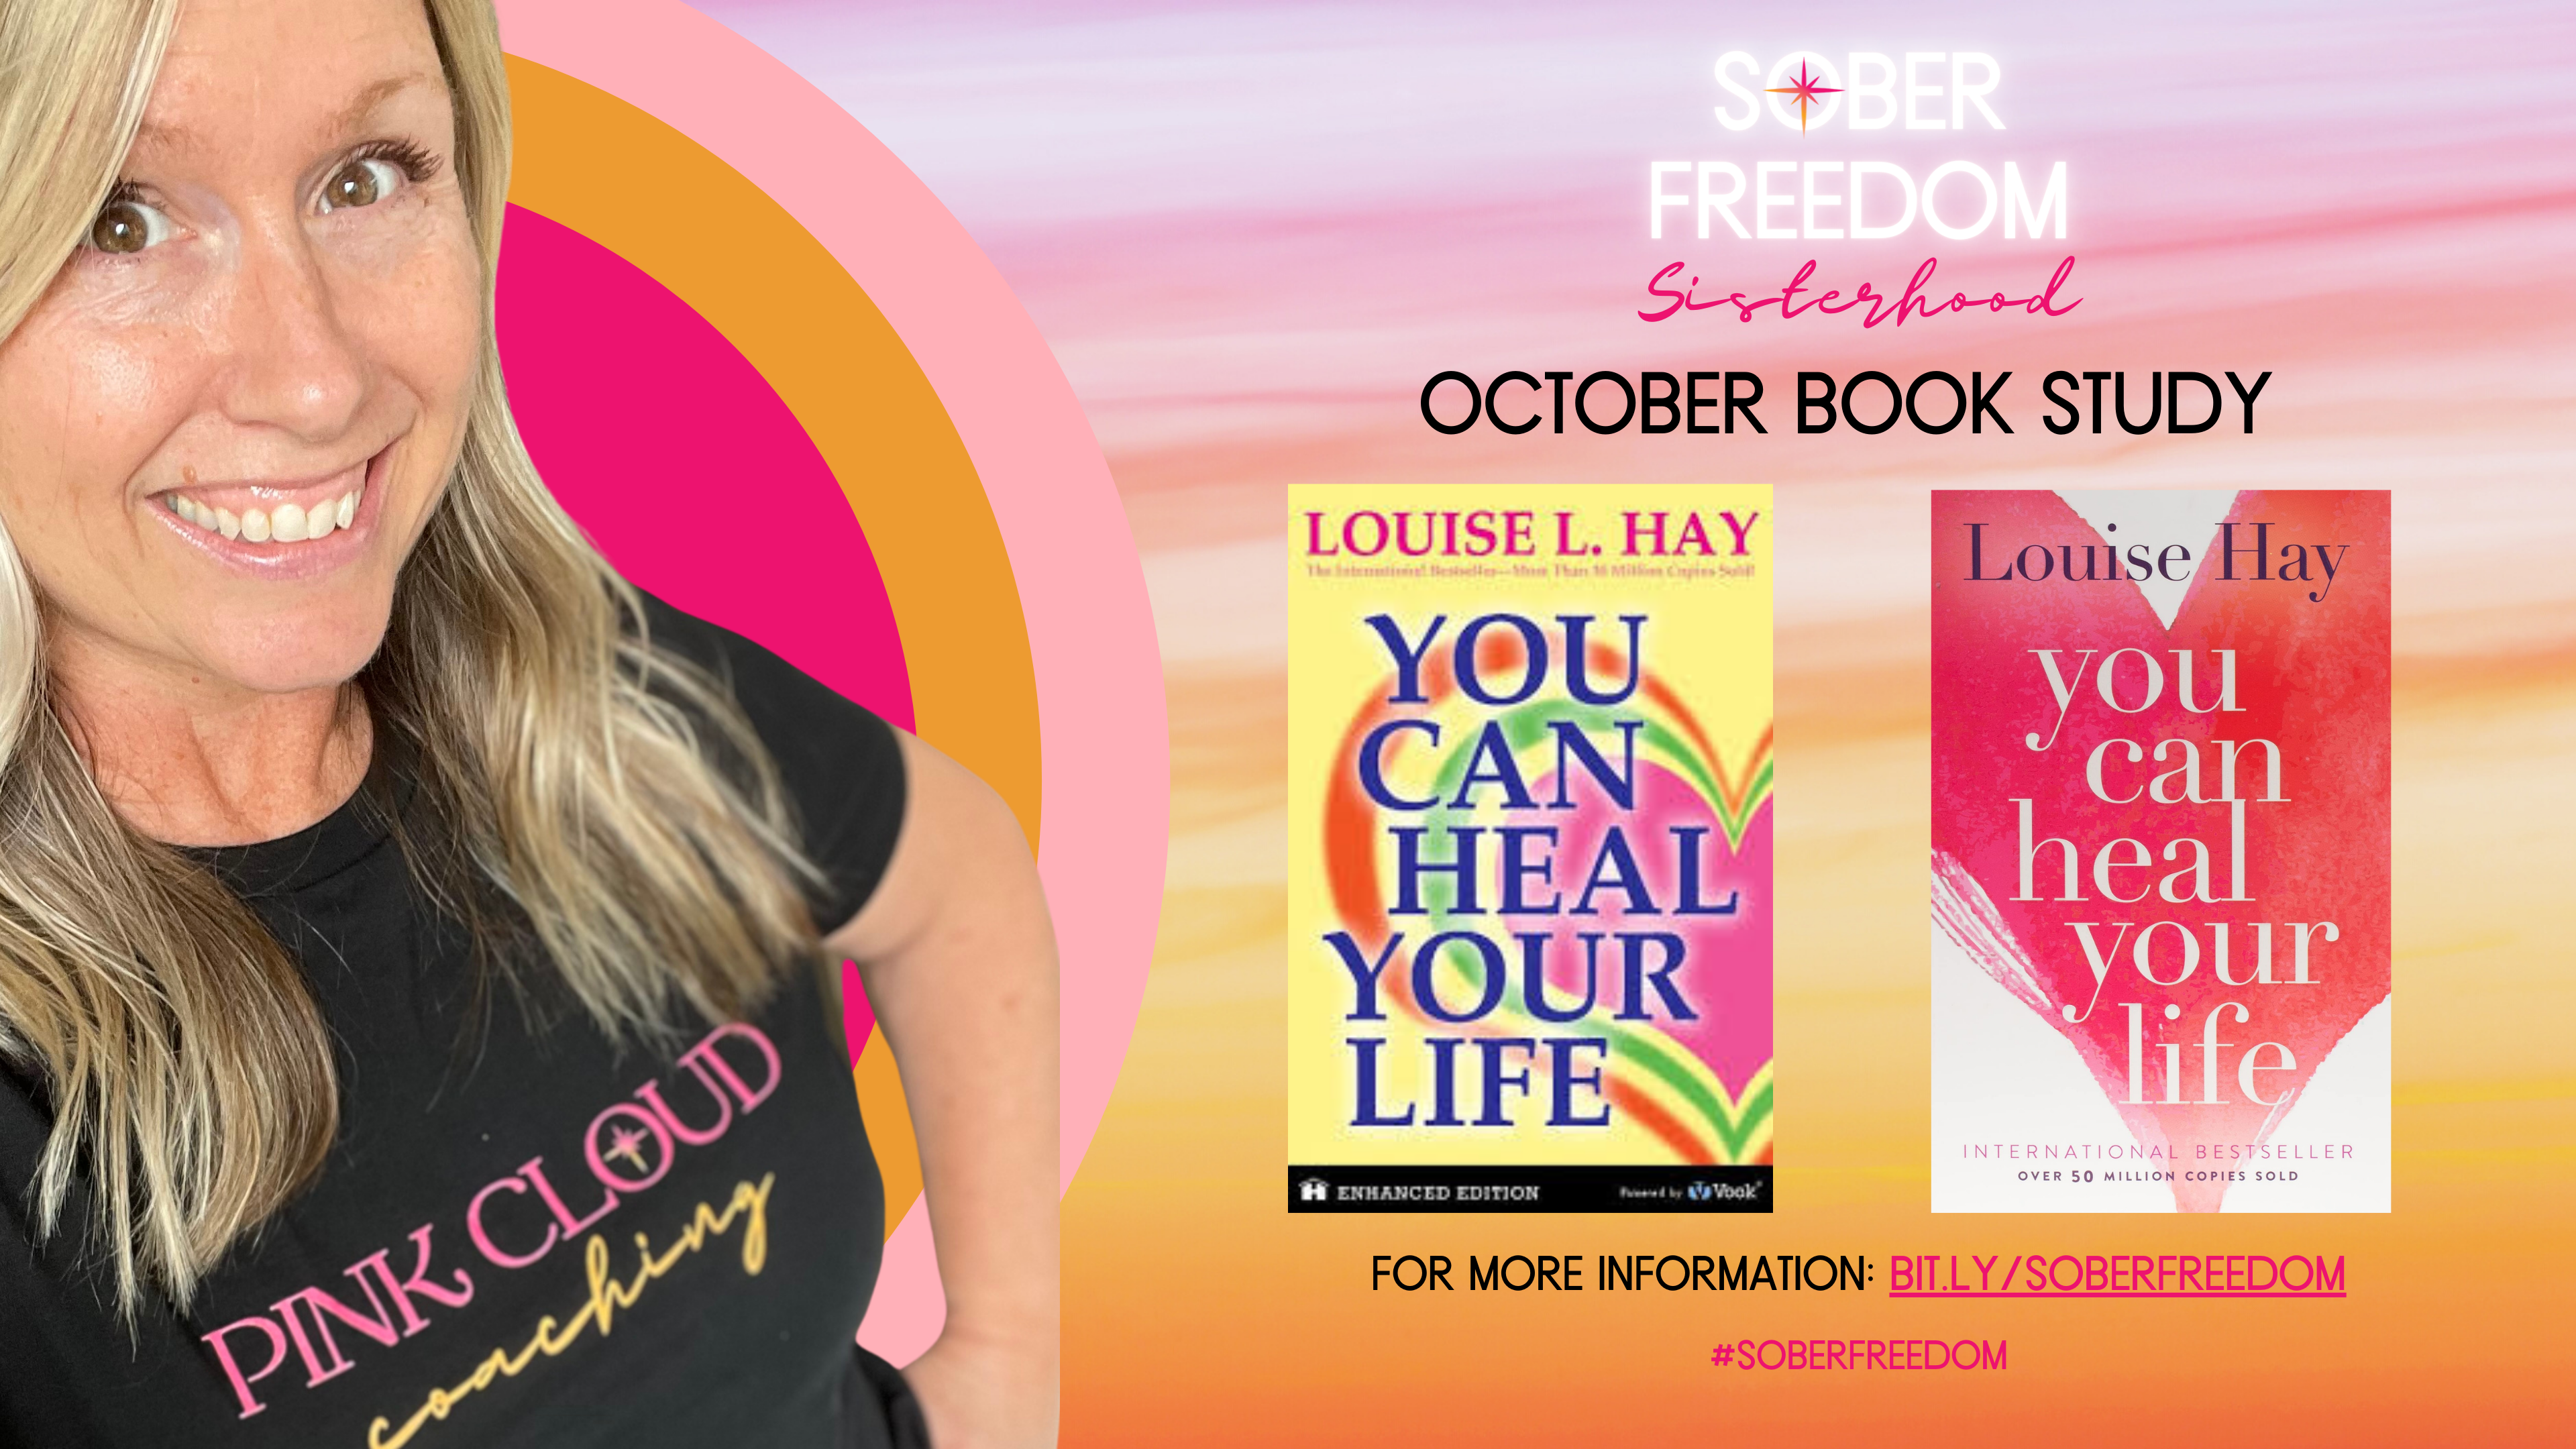 Sober Freedom Sisterhood Book Study Louise Hay You can heal your life